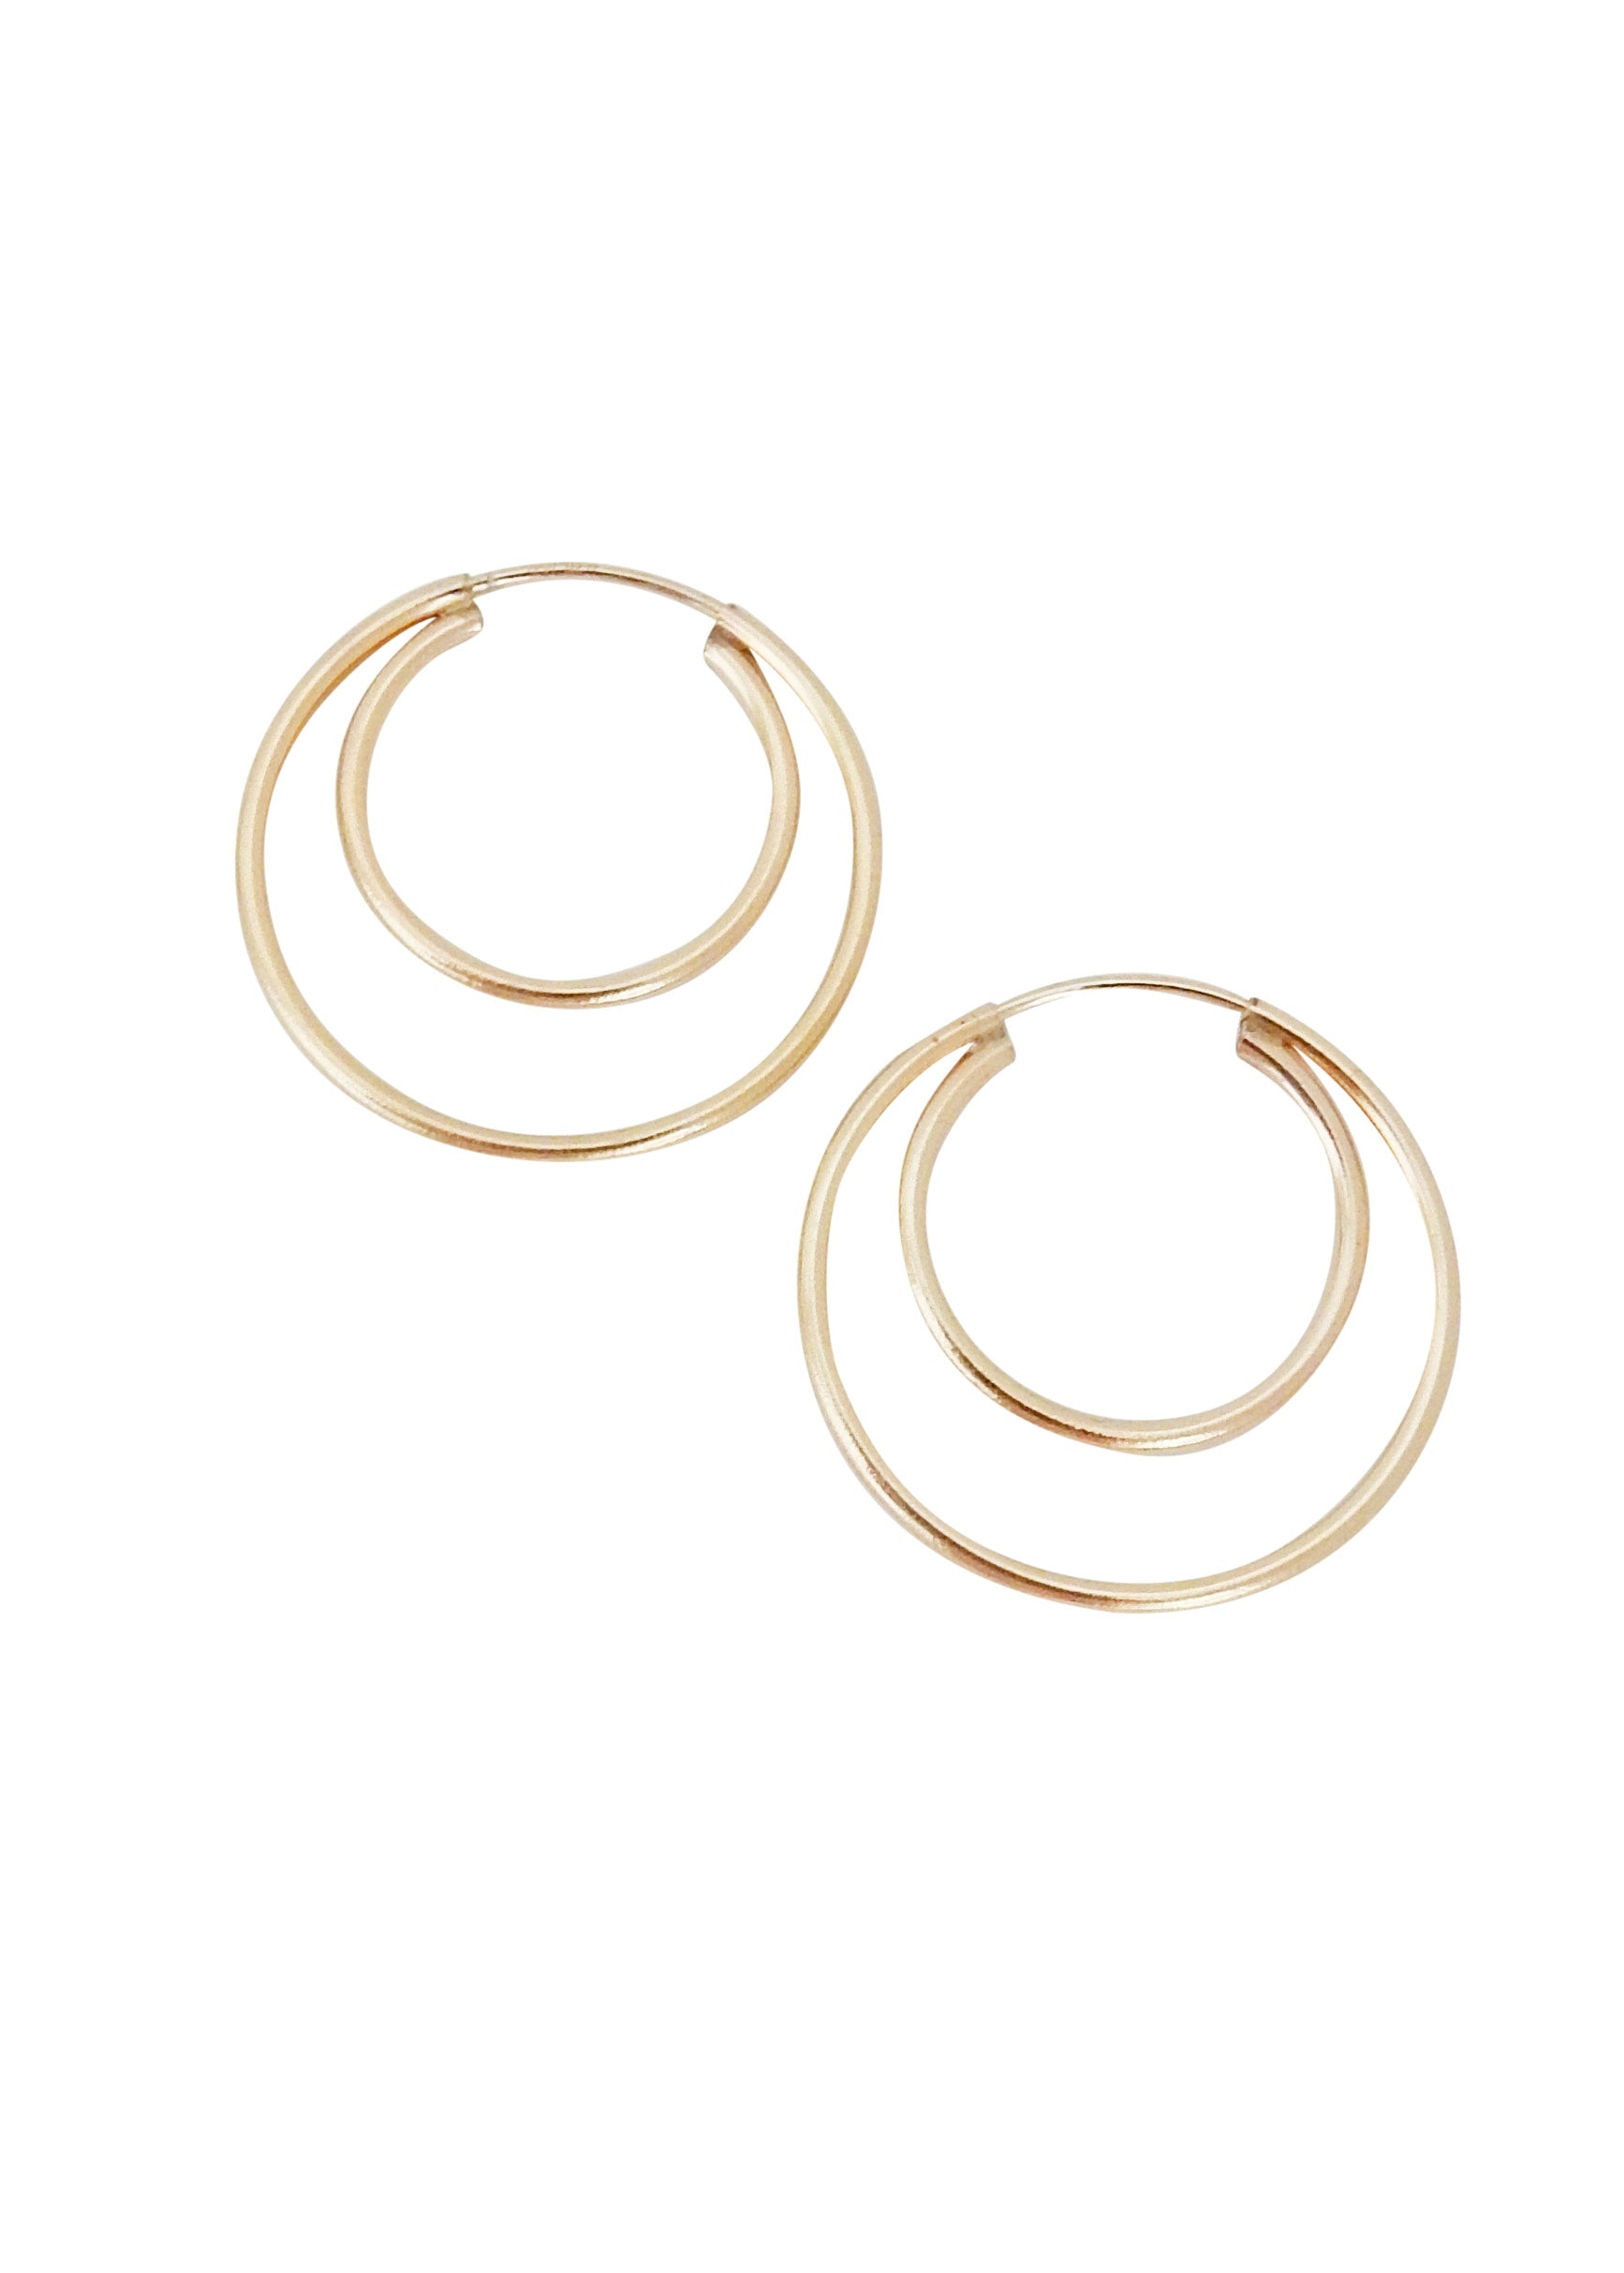 Apostle In House Collection Double Ring Hoops